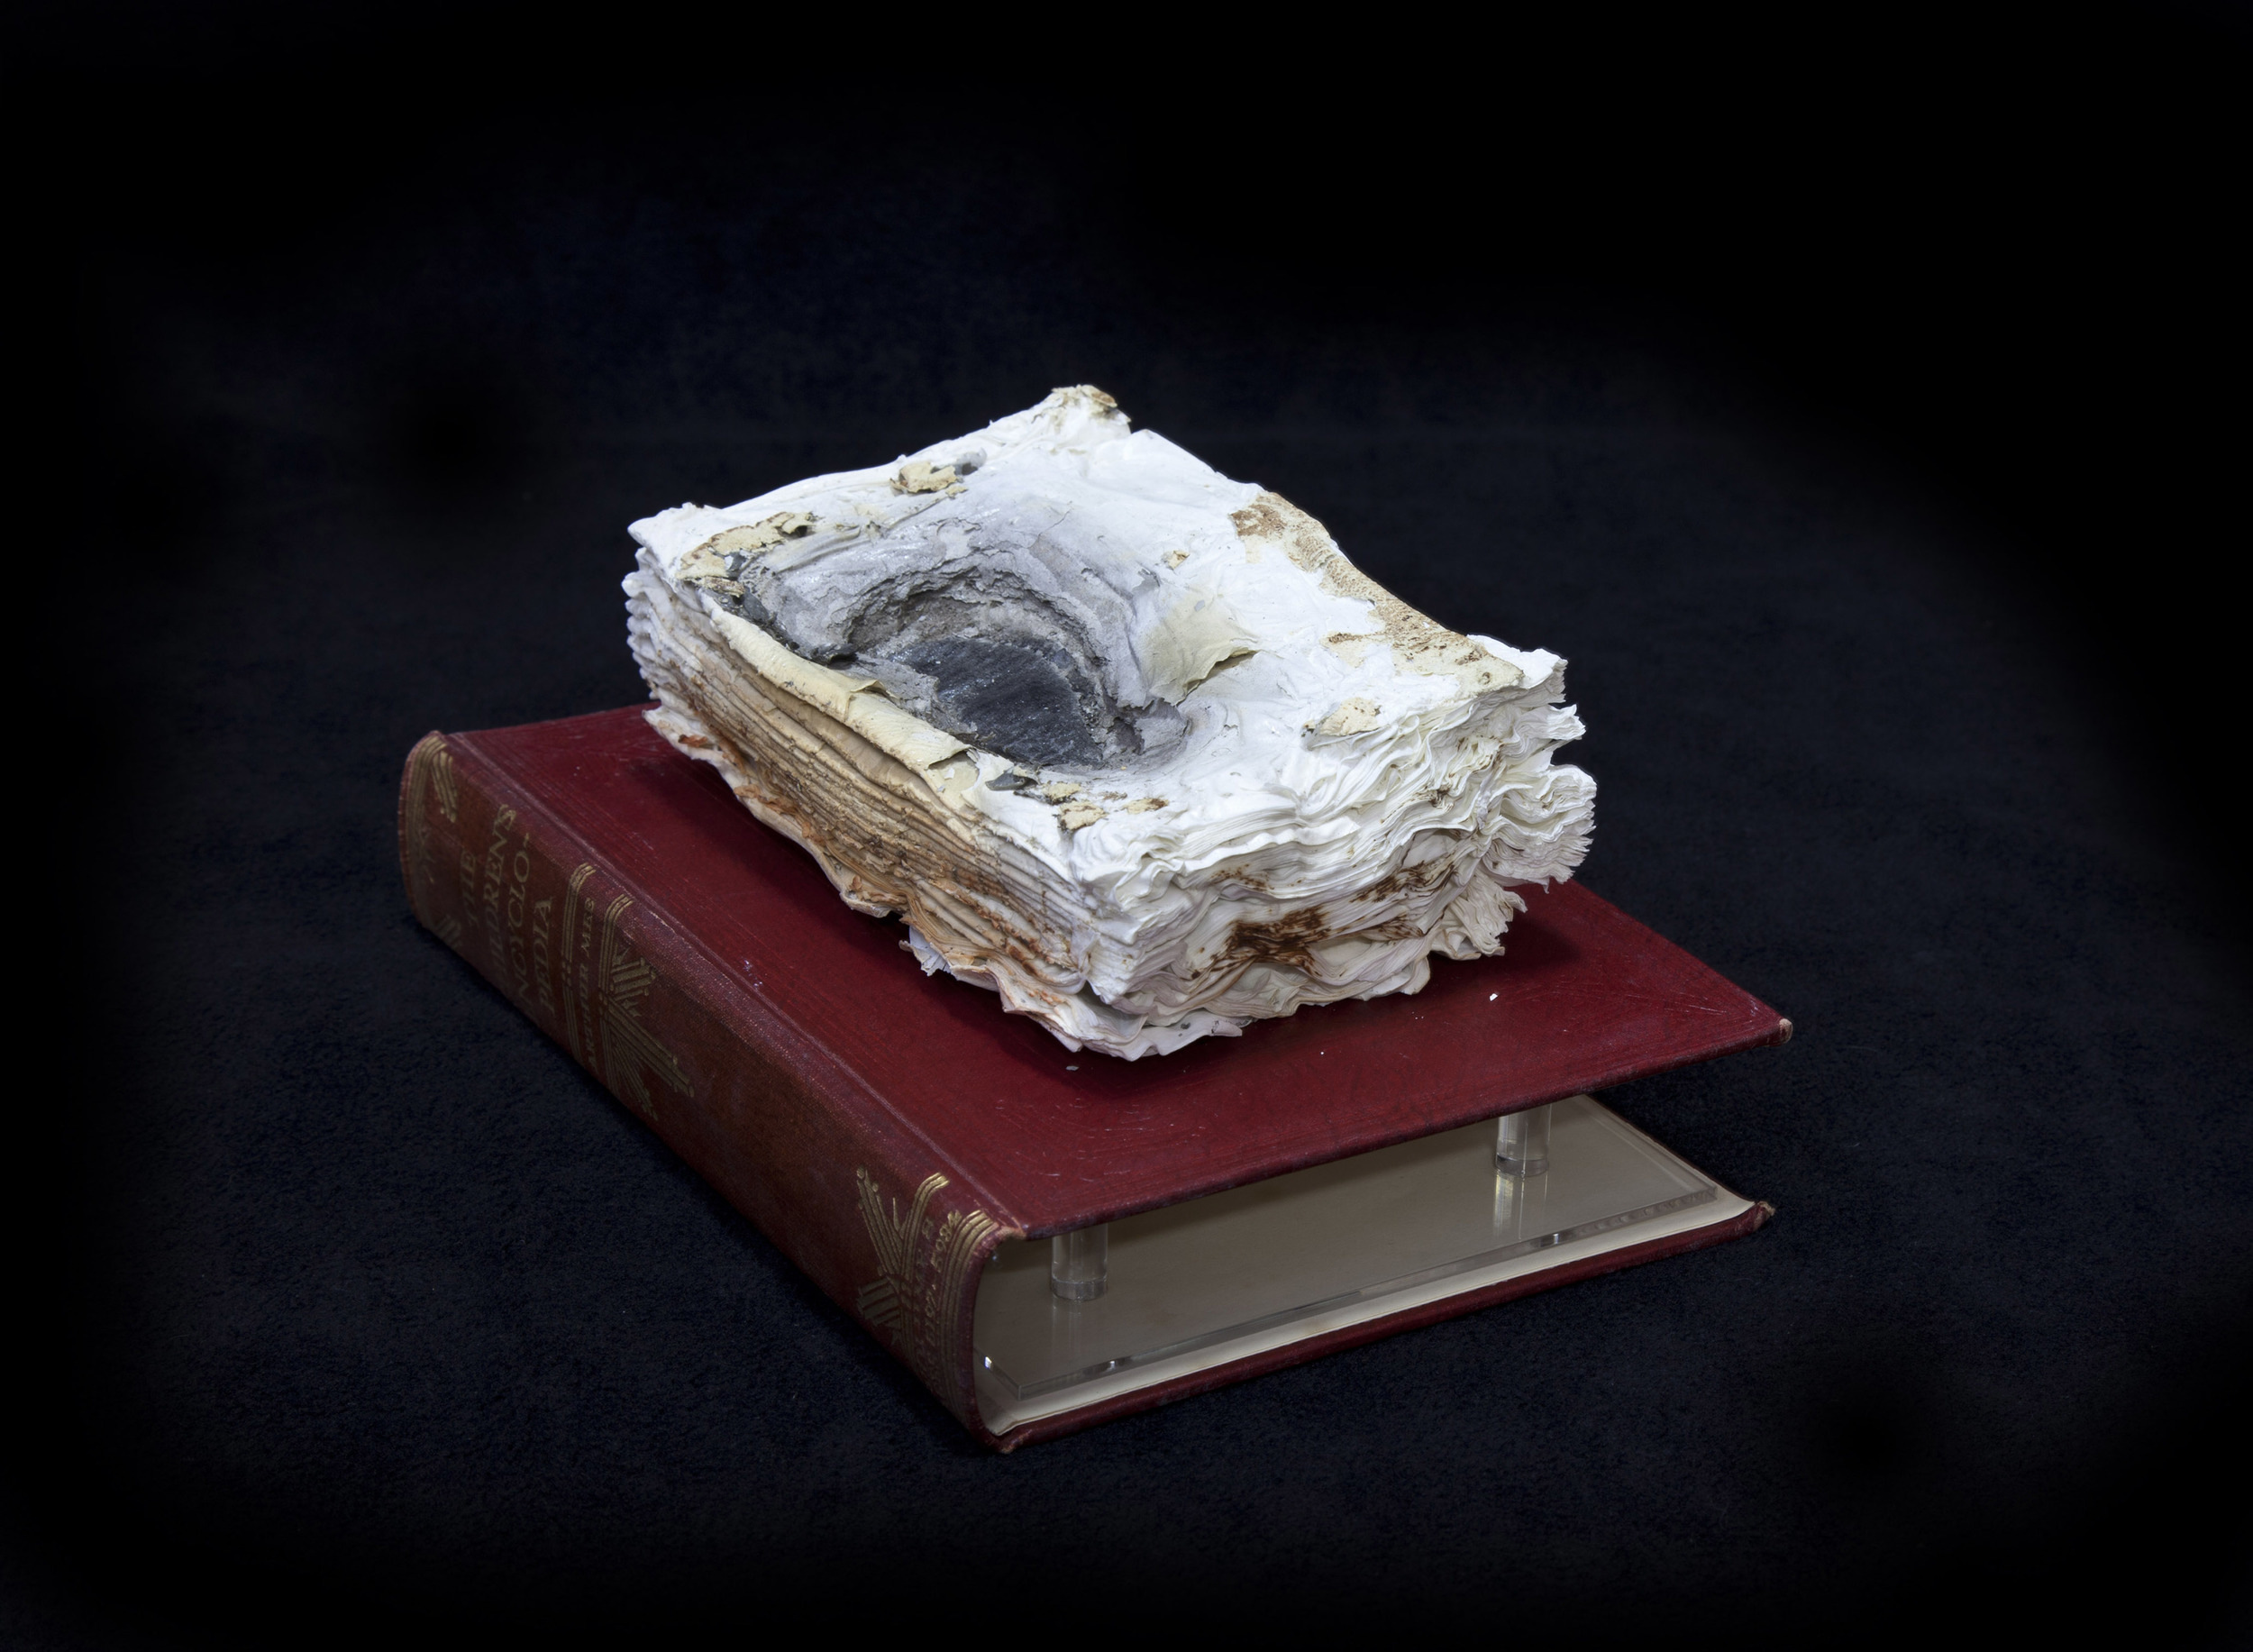 Cyrus Tang,  Children's Encyclopaedia Vol. 2,  2016, cremated book ashes, book cover and acrylic case, 29 x 21 x 21cm.